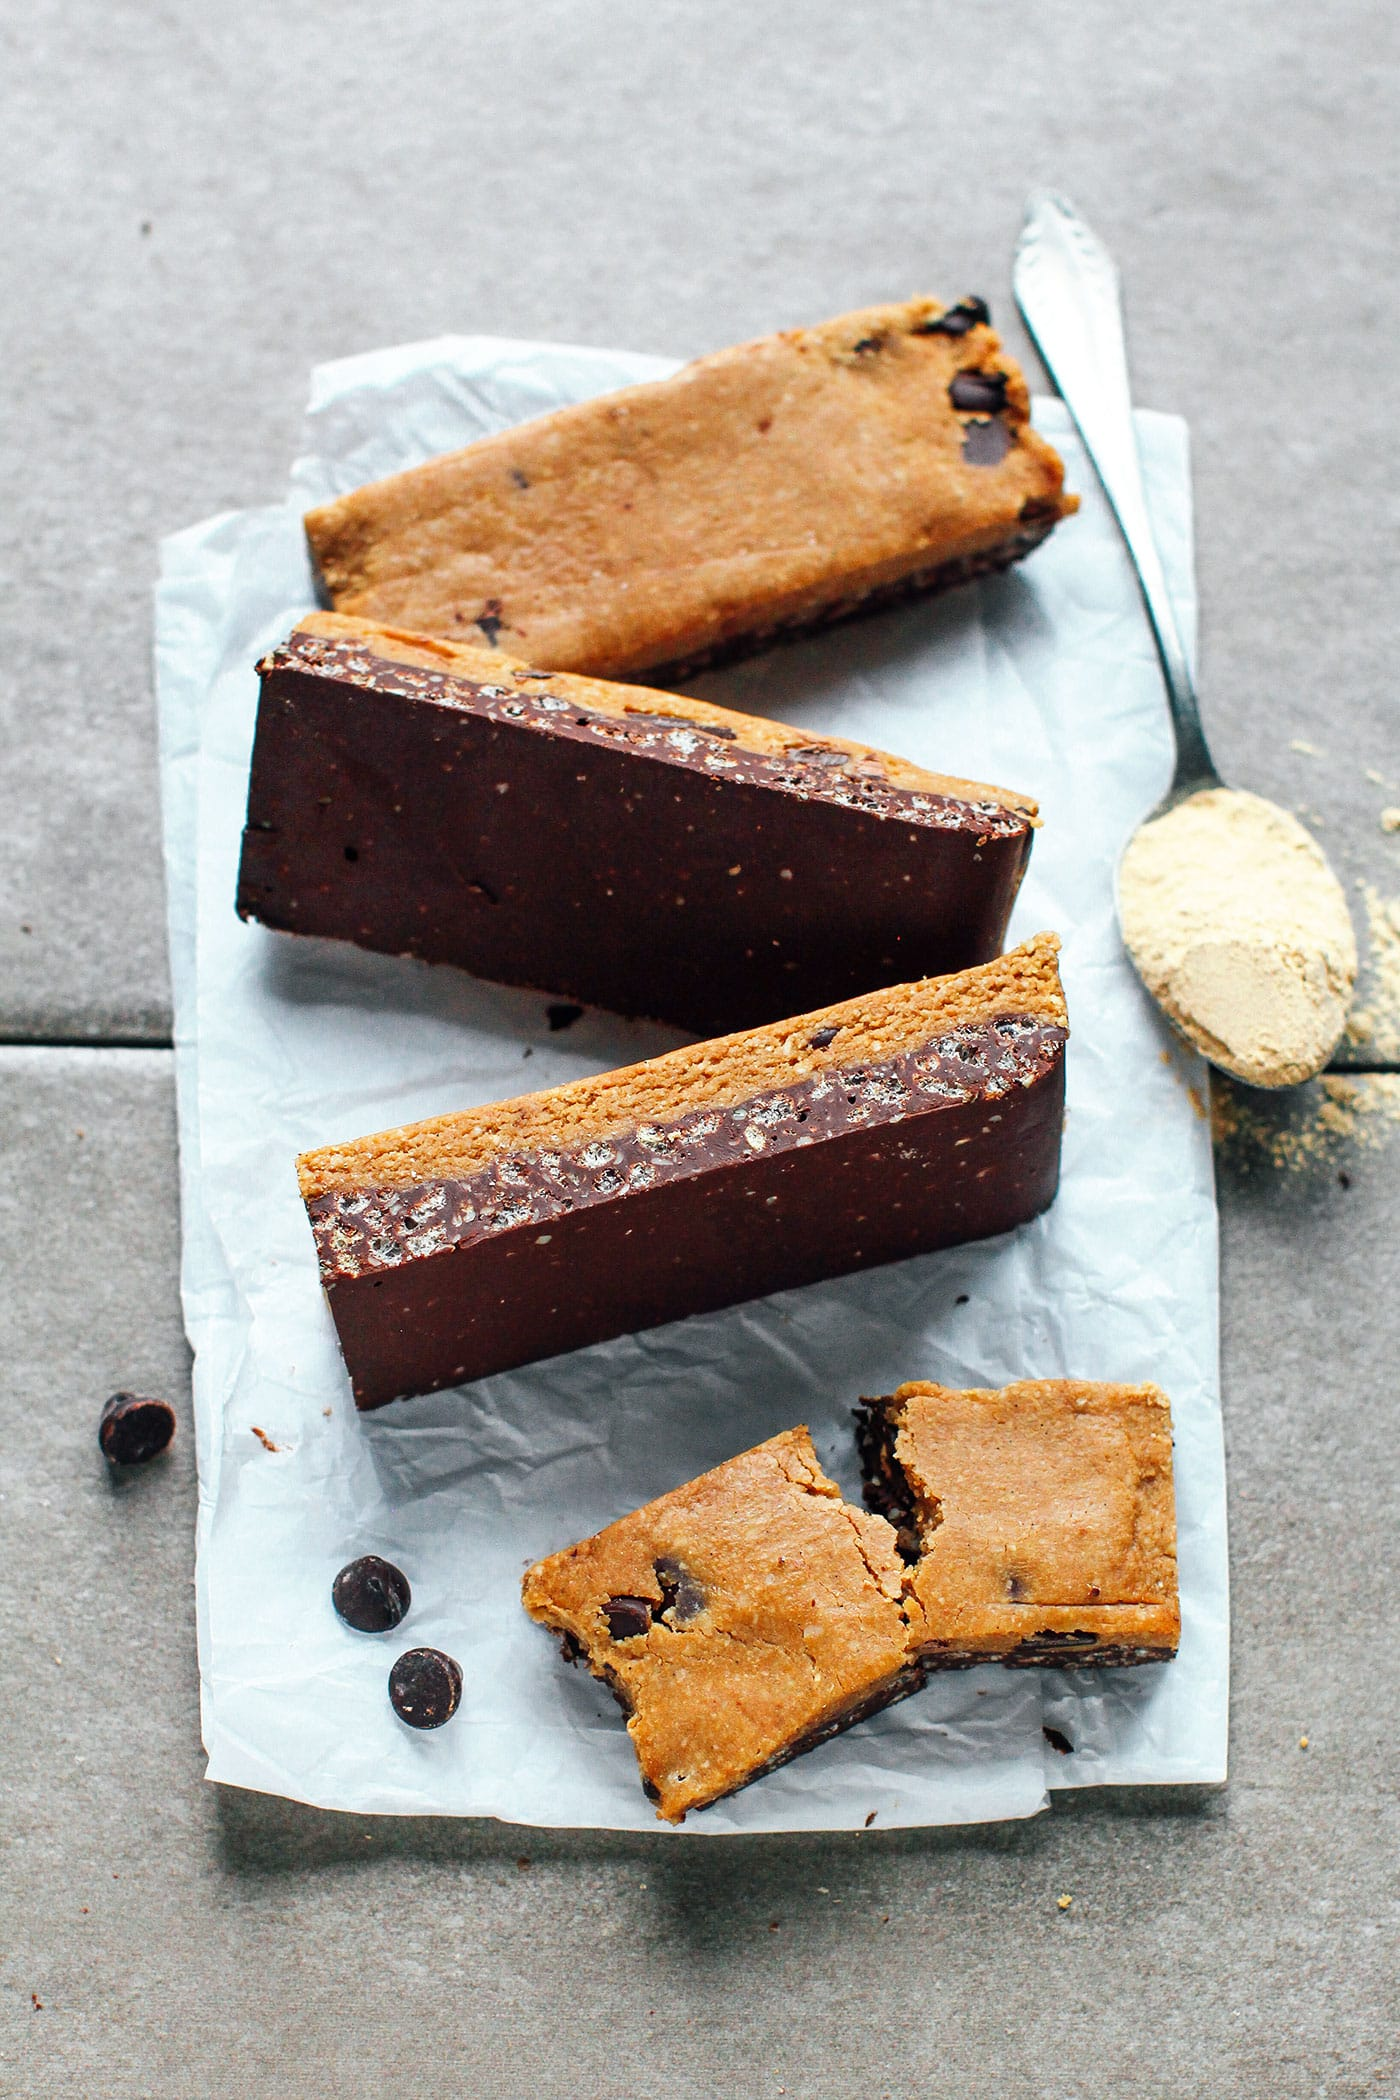 Cookie Dough Chocolate Crunch Protein Bars (Vegan + GF)